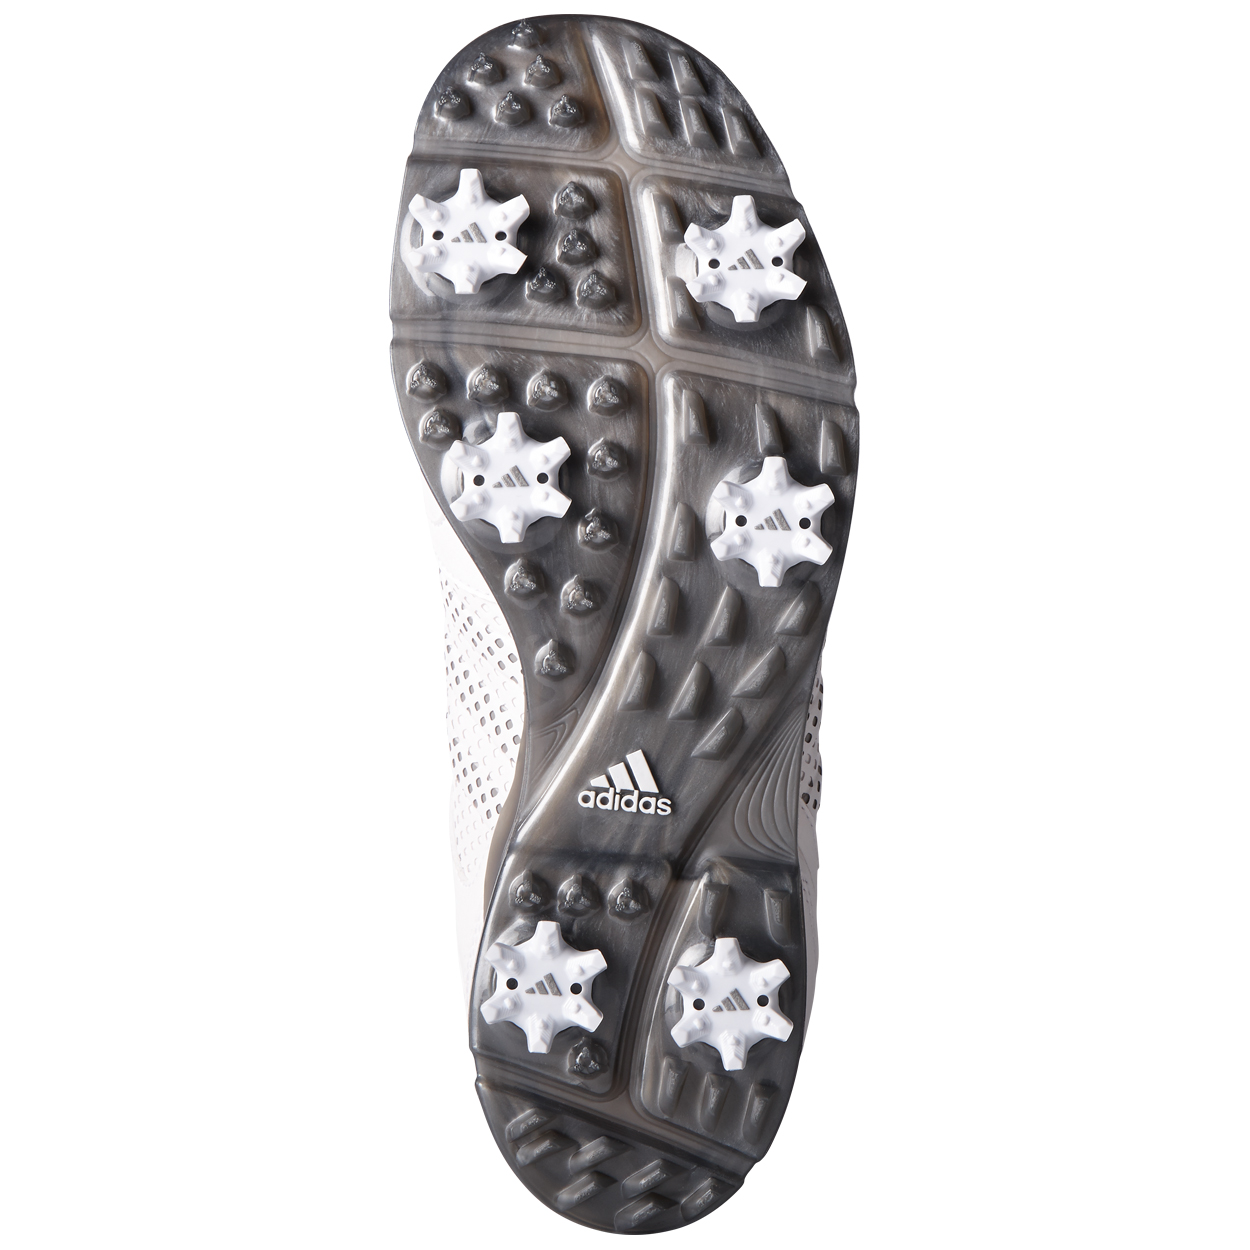 Adidas-Women-039-s-adiPure-Tour-Golf-Shoe-New thumbnail 6